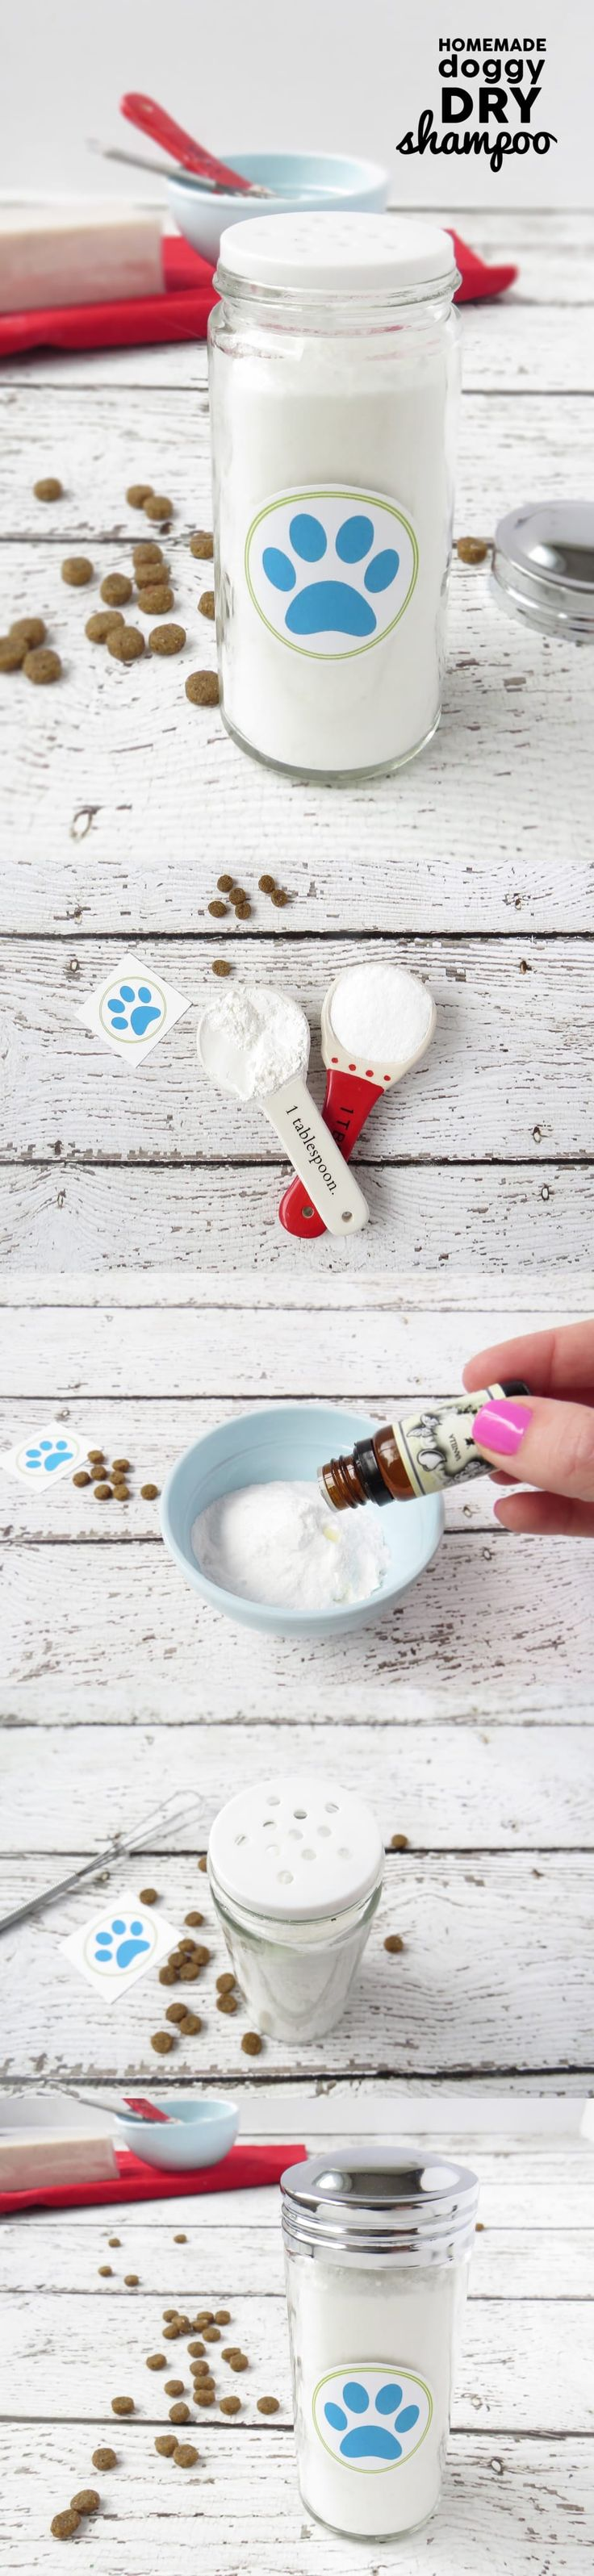 Dry shampoo isn't just for humans anymore — this homemade dog version is a game-changer